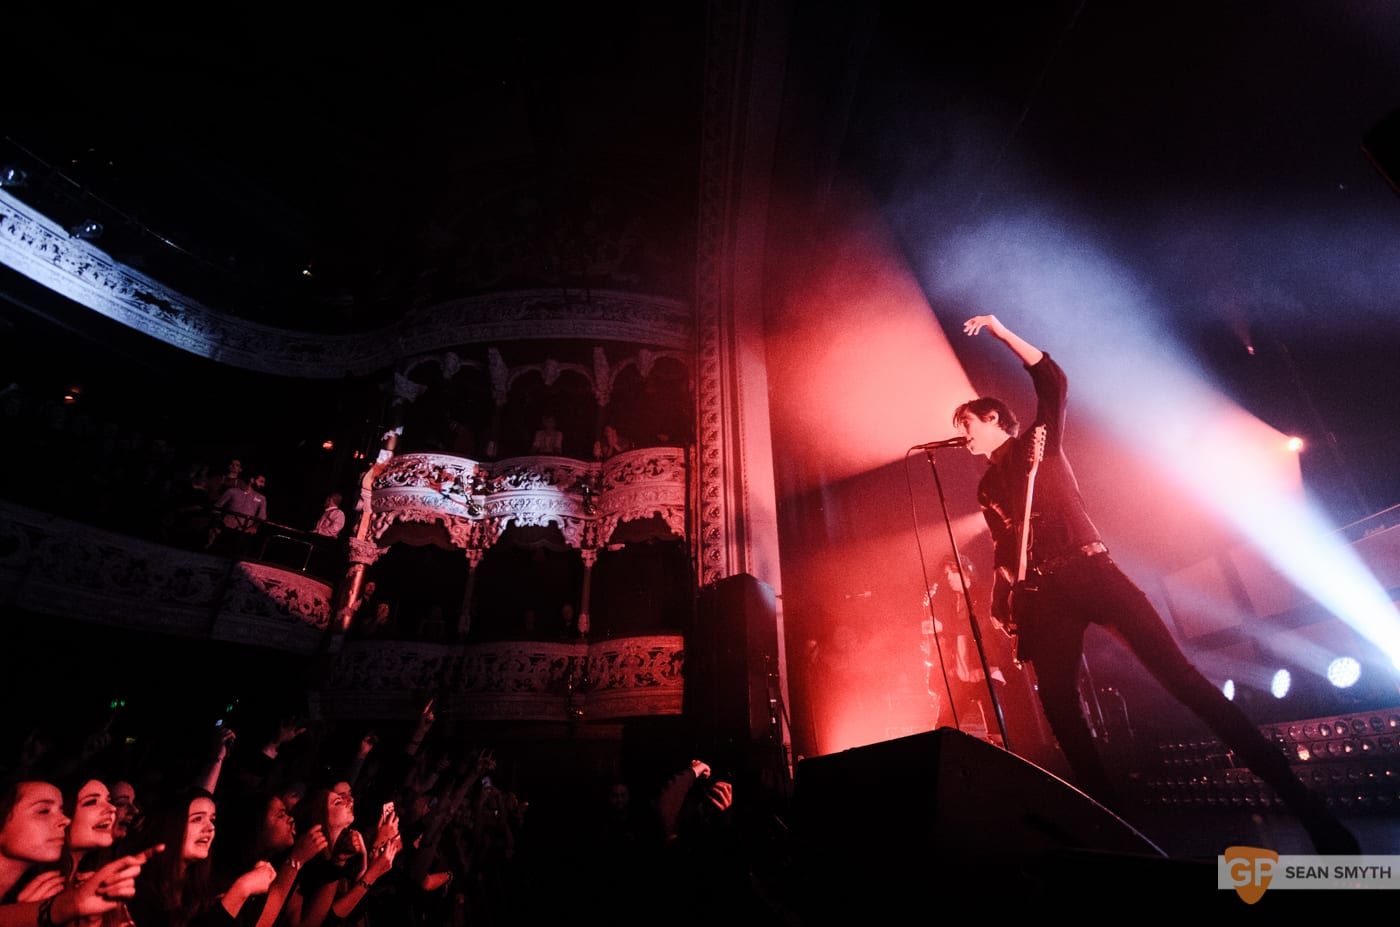 catfish-and-the-bottlemen-at-the-olympia-theatre-by-sean-smyth-20-11-16-3-of-27